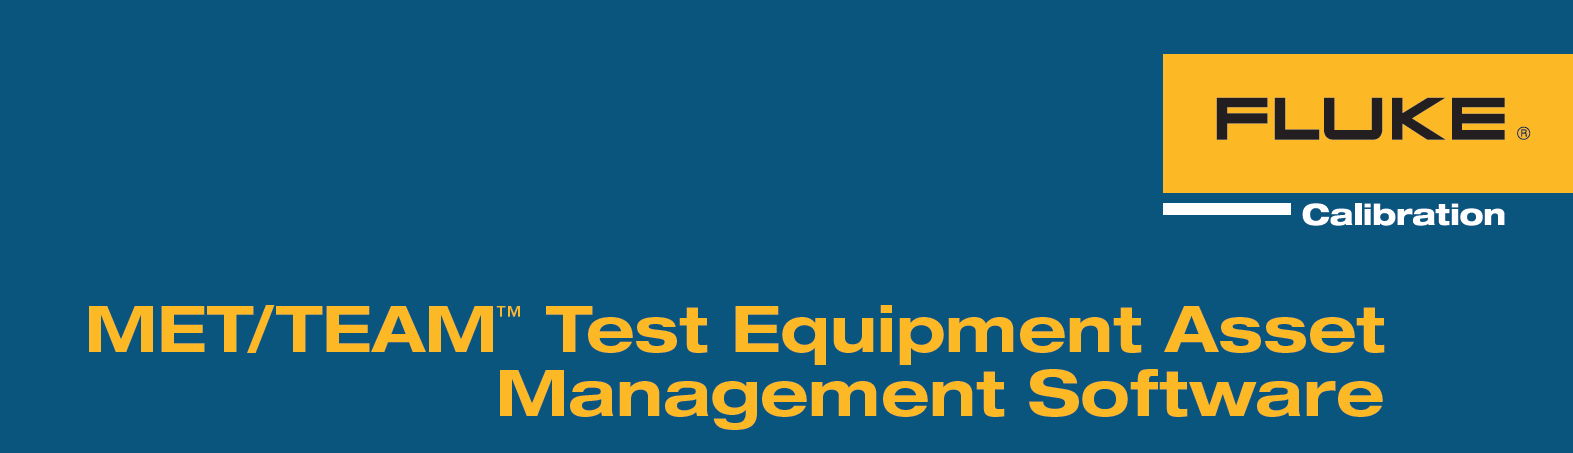 fluke calibration software quality control iso 17025 calibration laboratory management software